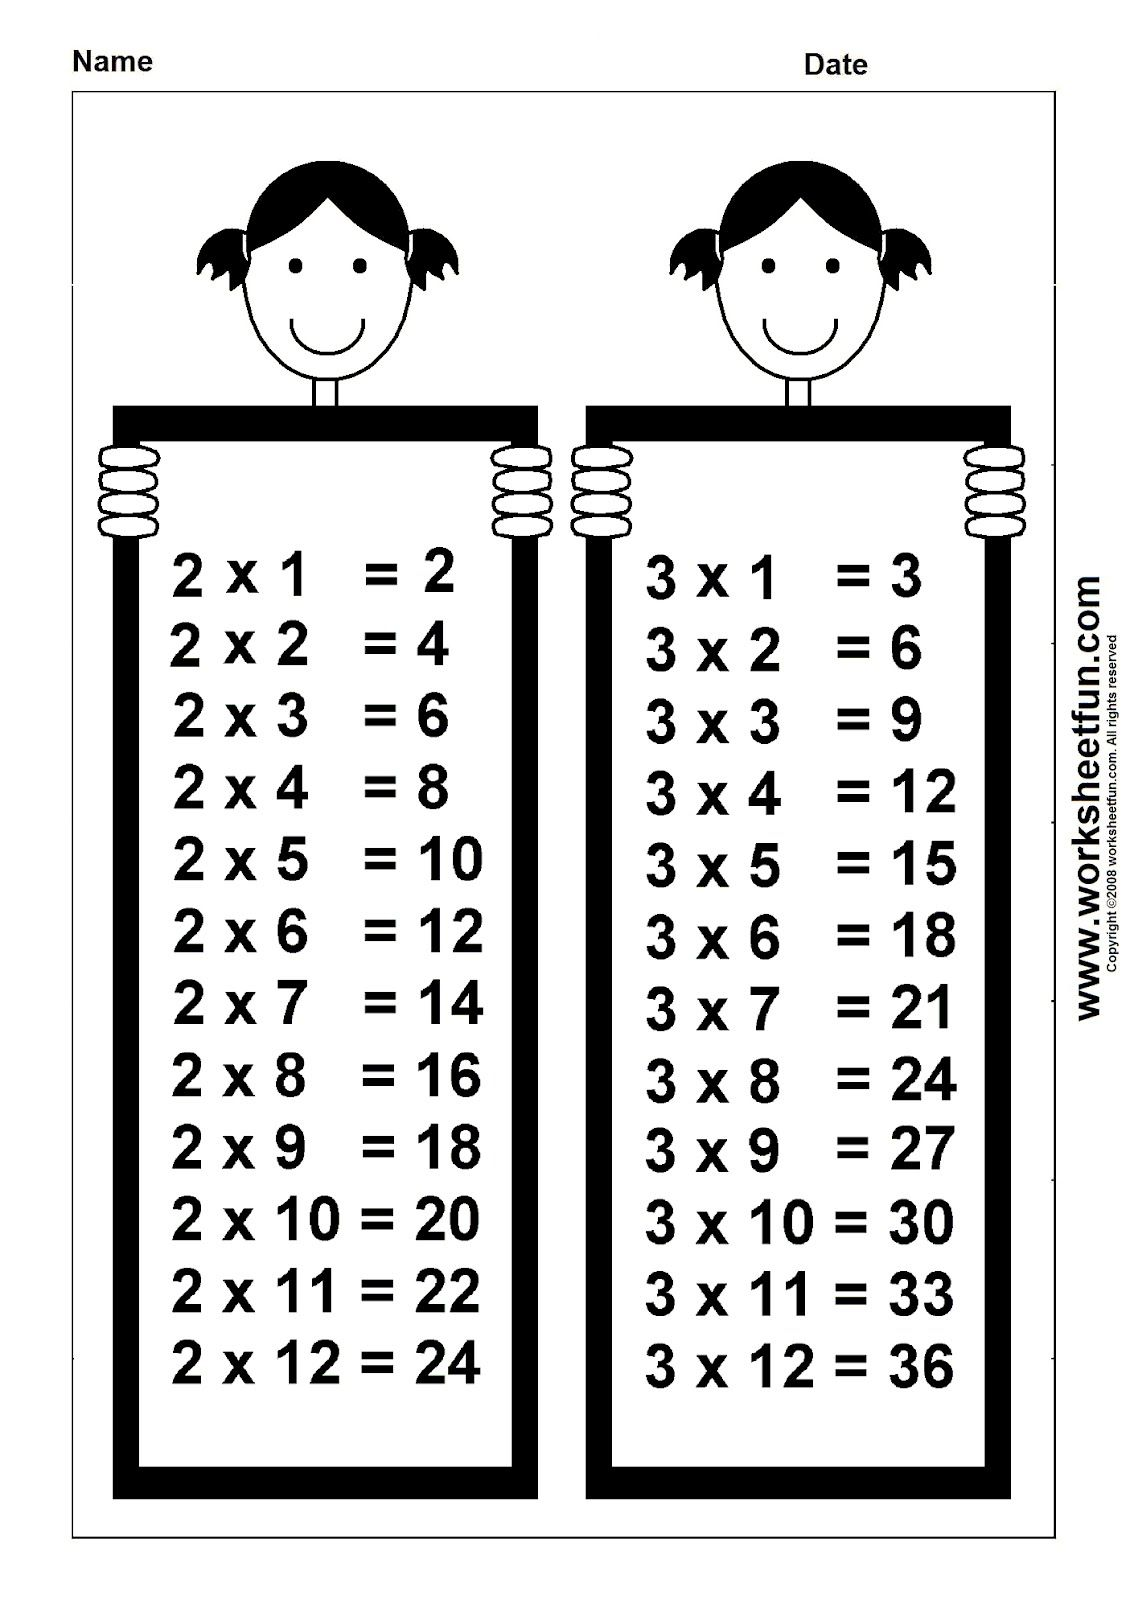 Worksheet Multiplication Facts 2 And 3 worksheet multiplication facts 2 and 3 mikyu free pinterest the worlds catalog of ideas 3rd grade math multiplication